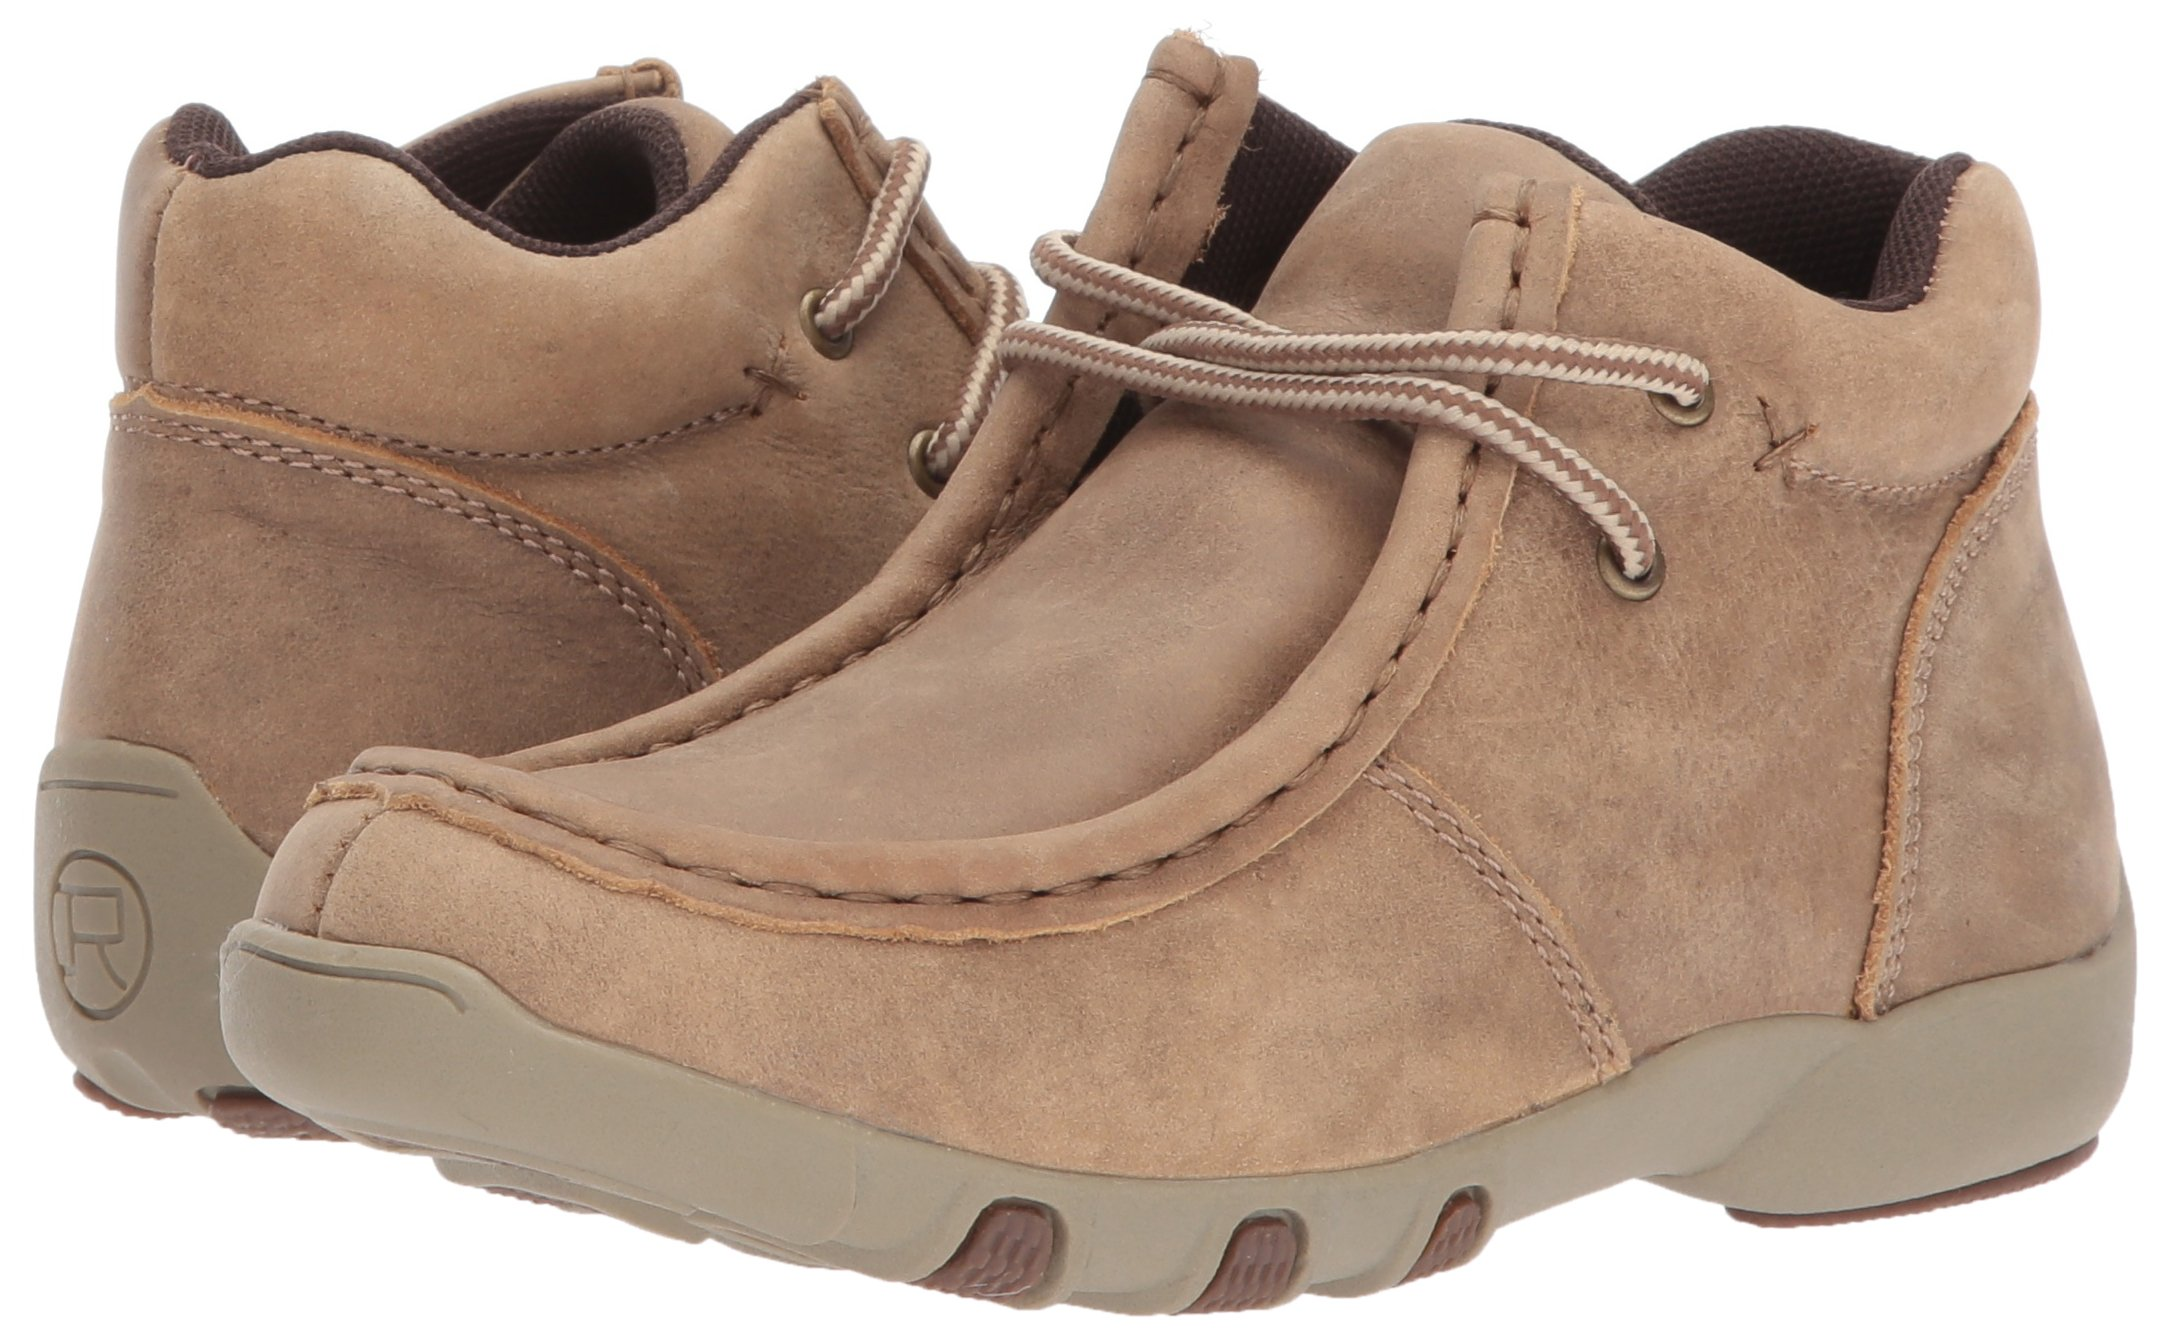 ROPER Boys' Bode, tan 10 M US Little Kid by ROPER (Image #6)